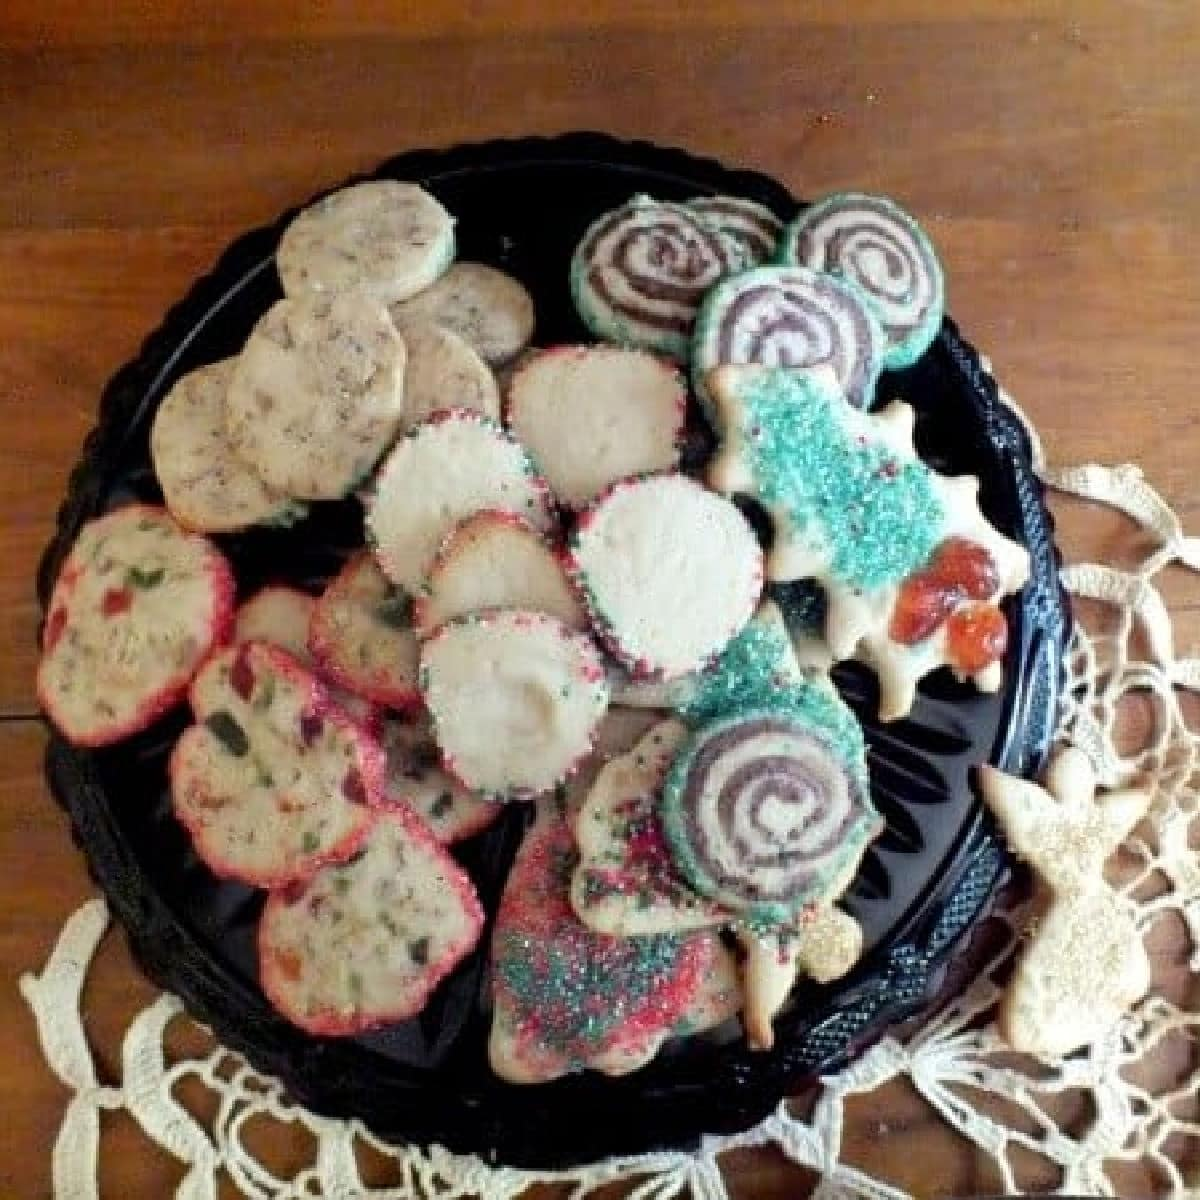 Plate of assorted holiday cookies.